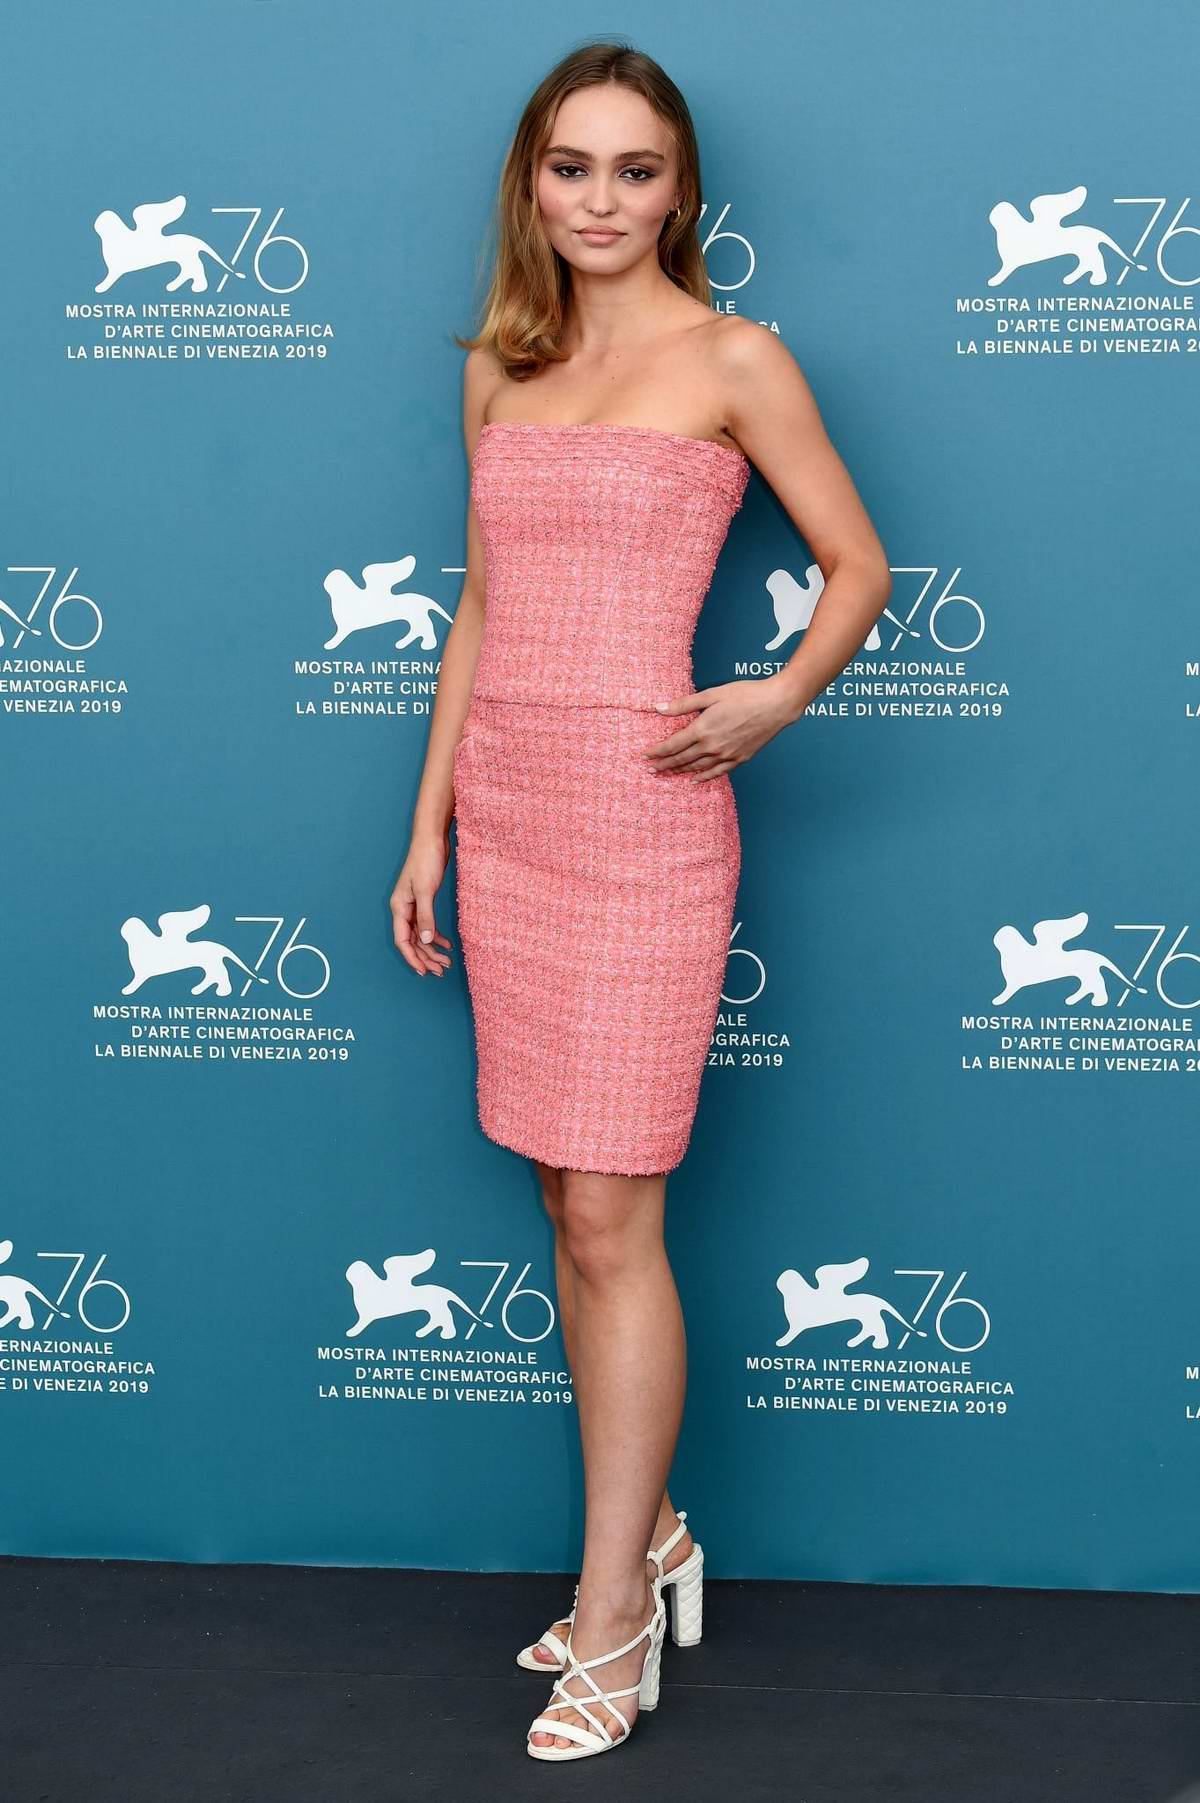 Lily-Rose Depp attends 'The King' Photocall during the 76th Venice Film Festival in Venice, Italy